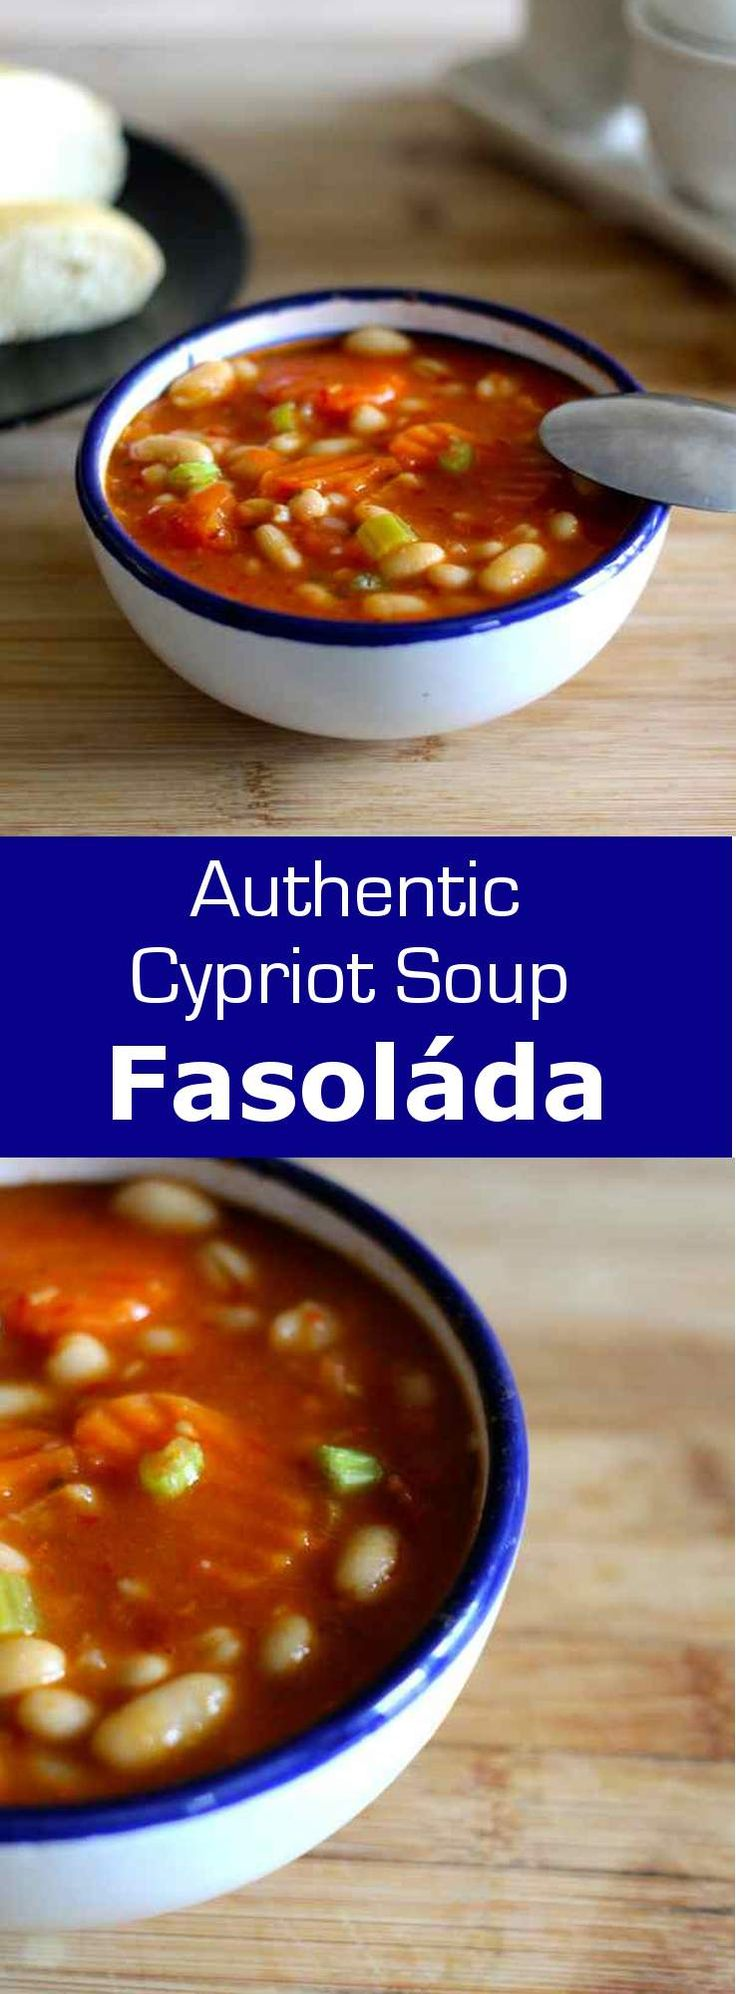 Fasolada is a traditional Greek and Cypriot soup with white beans, olive oil and vegetables. Recipe included.